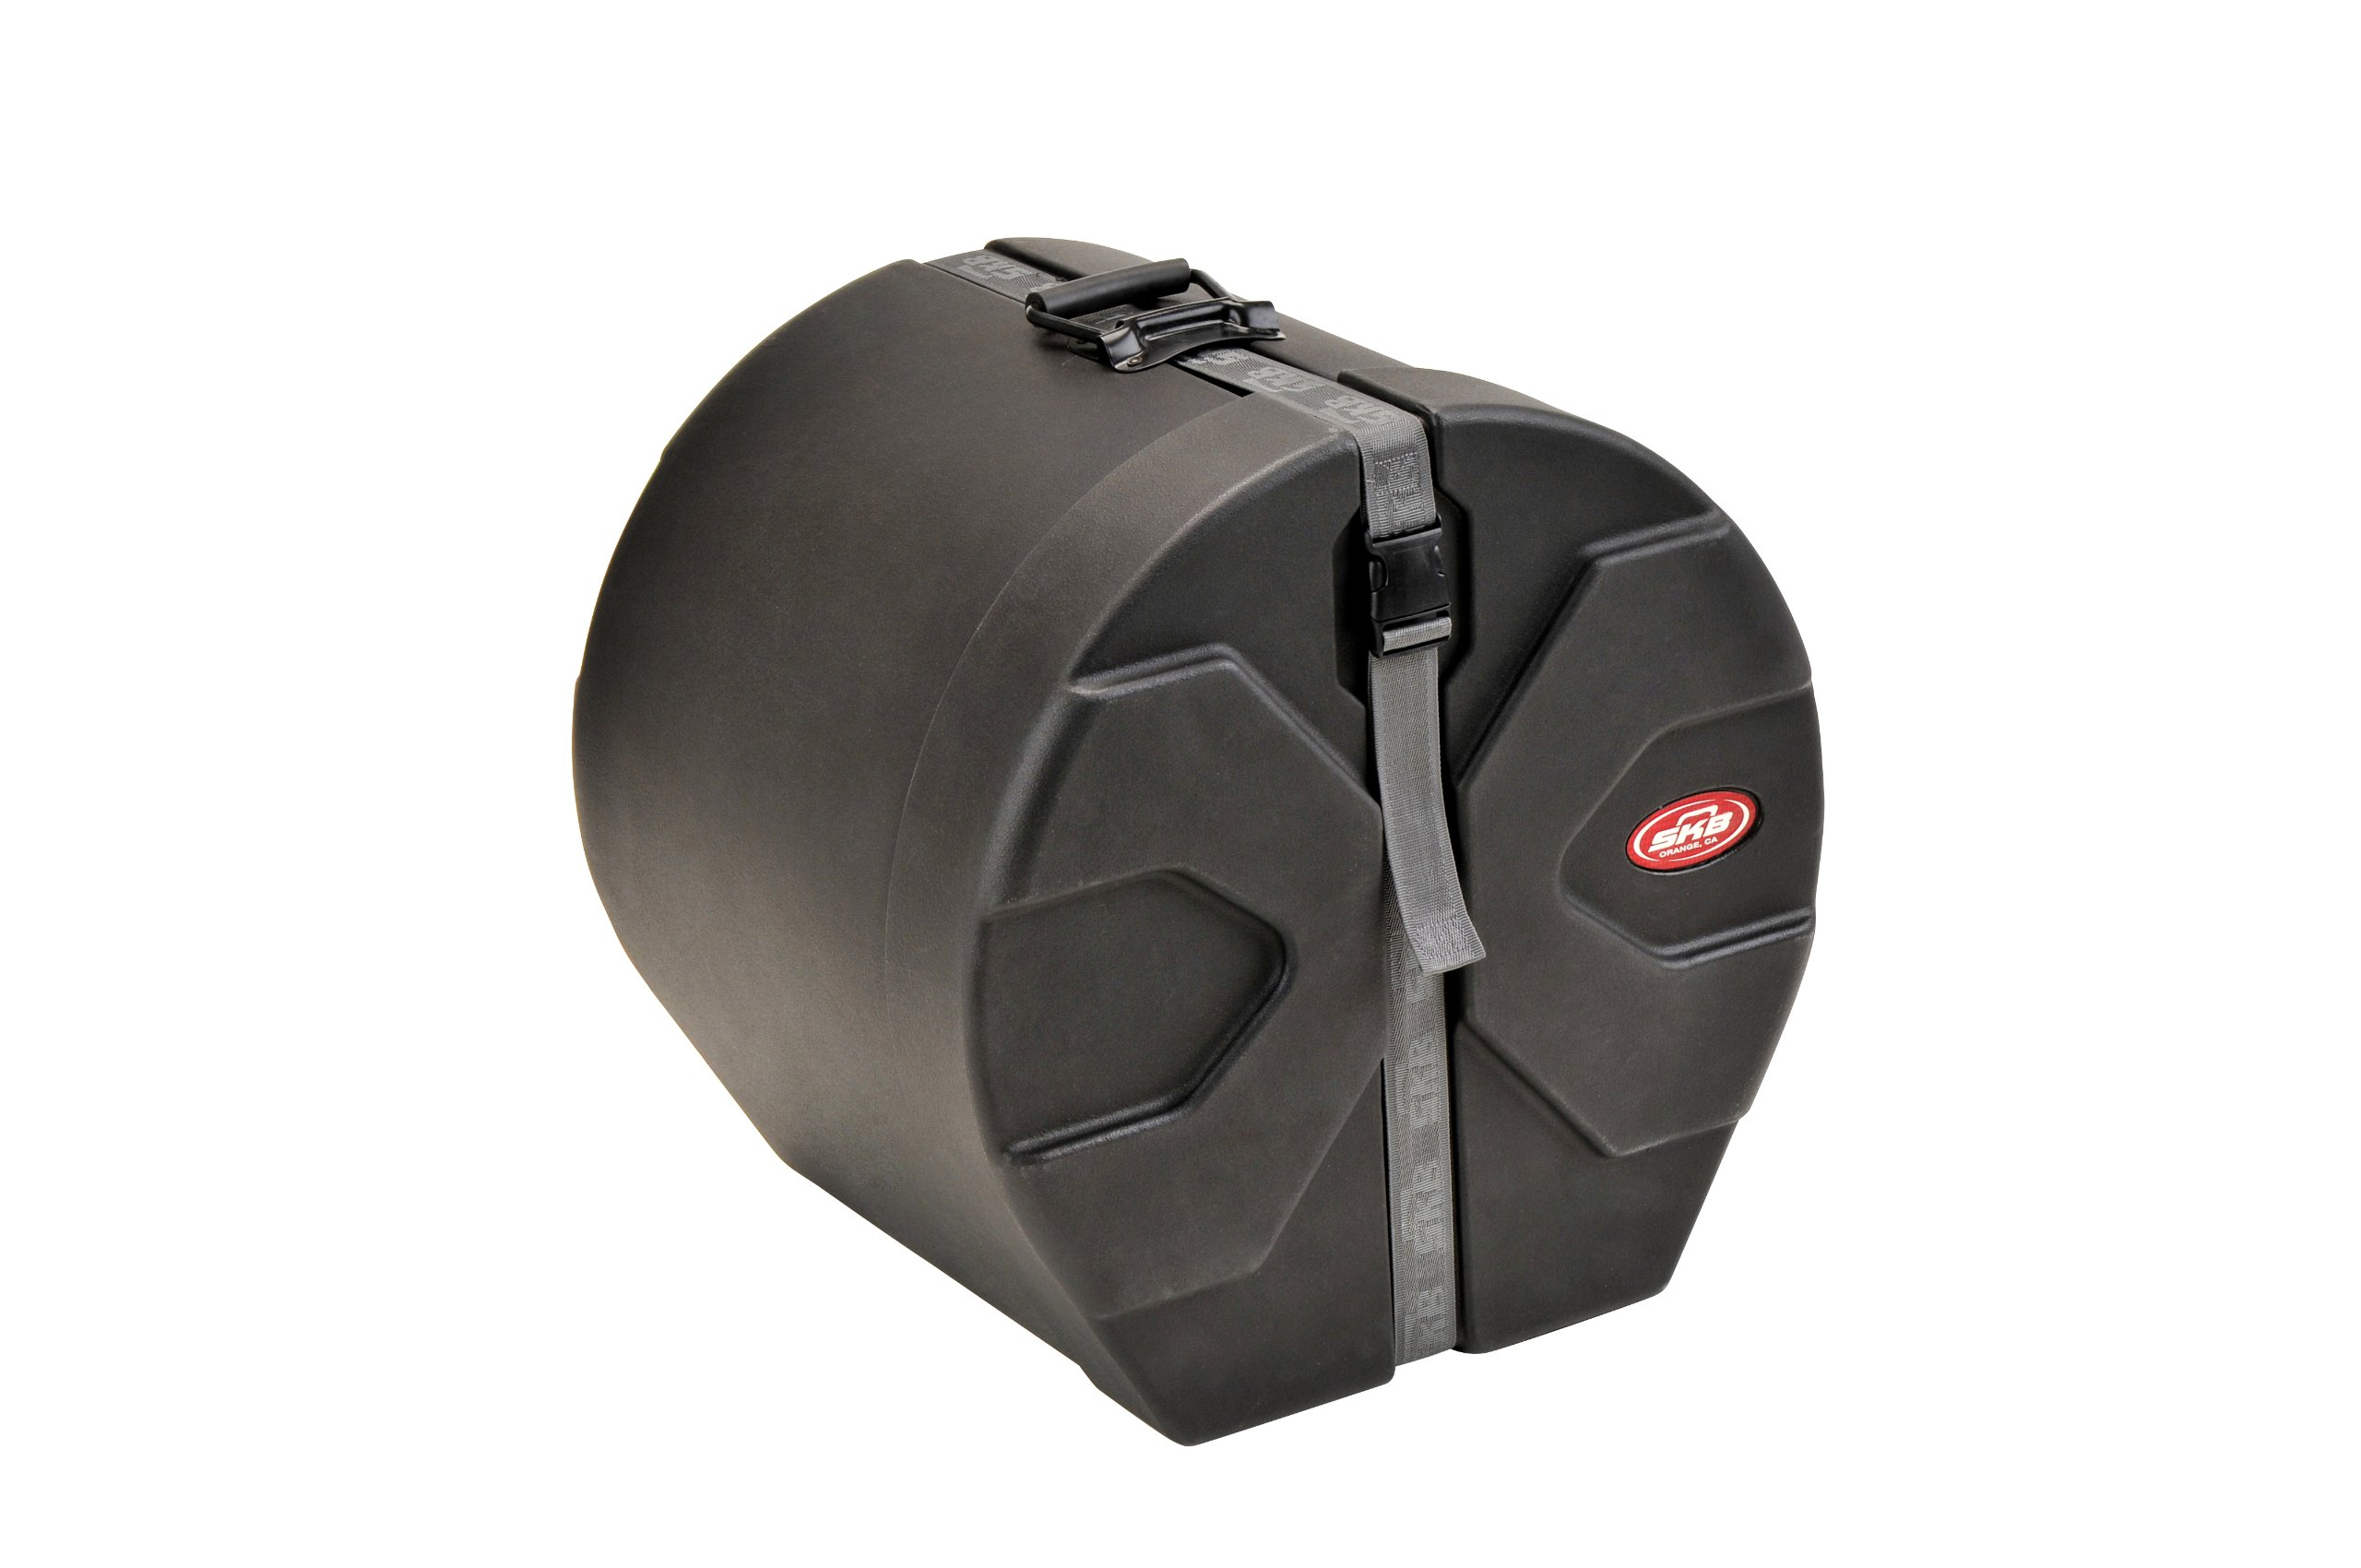 SKB 1SKB-D1214F Roto-Molded 12 x 14 Inches Floor Tom Case with Padded Interior